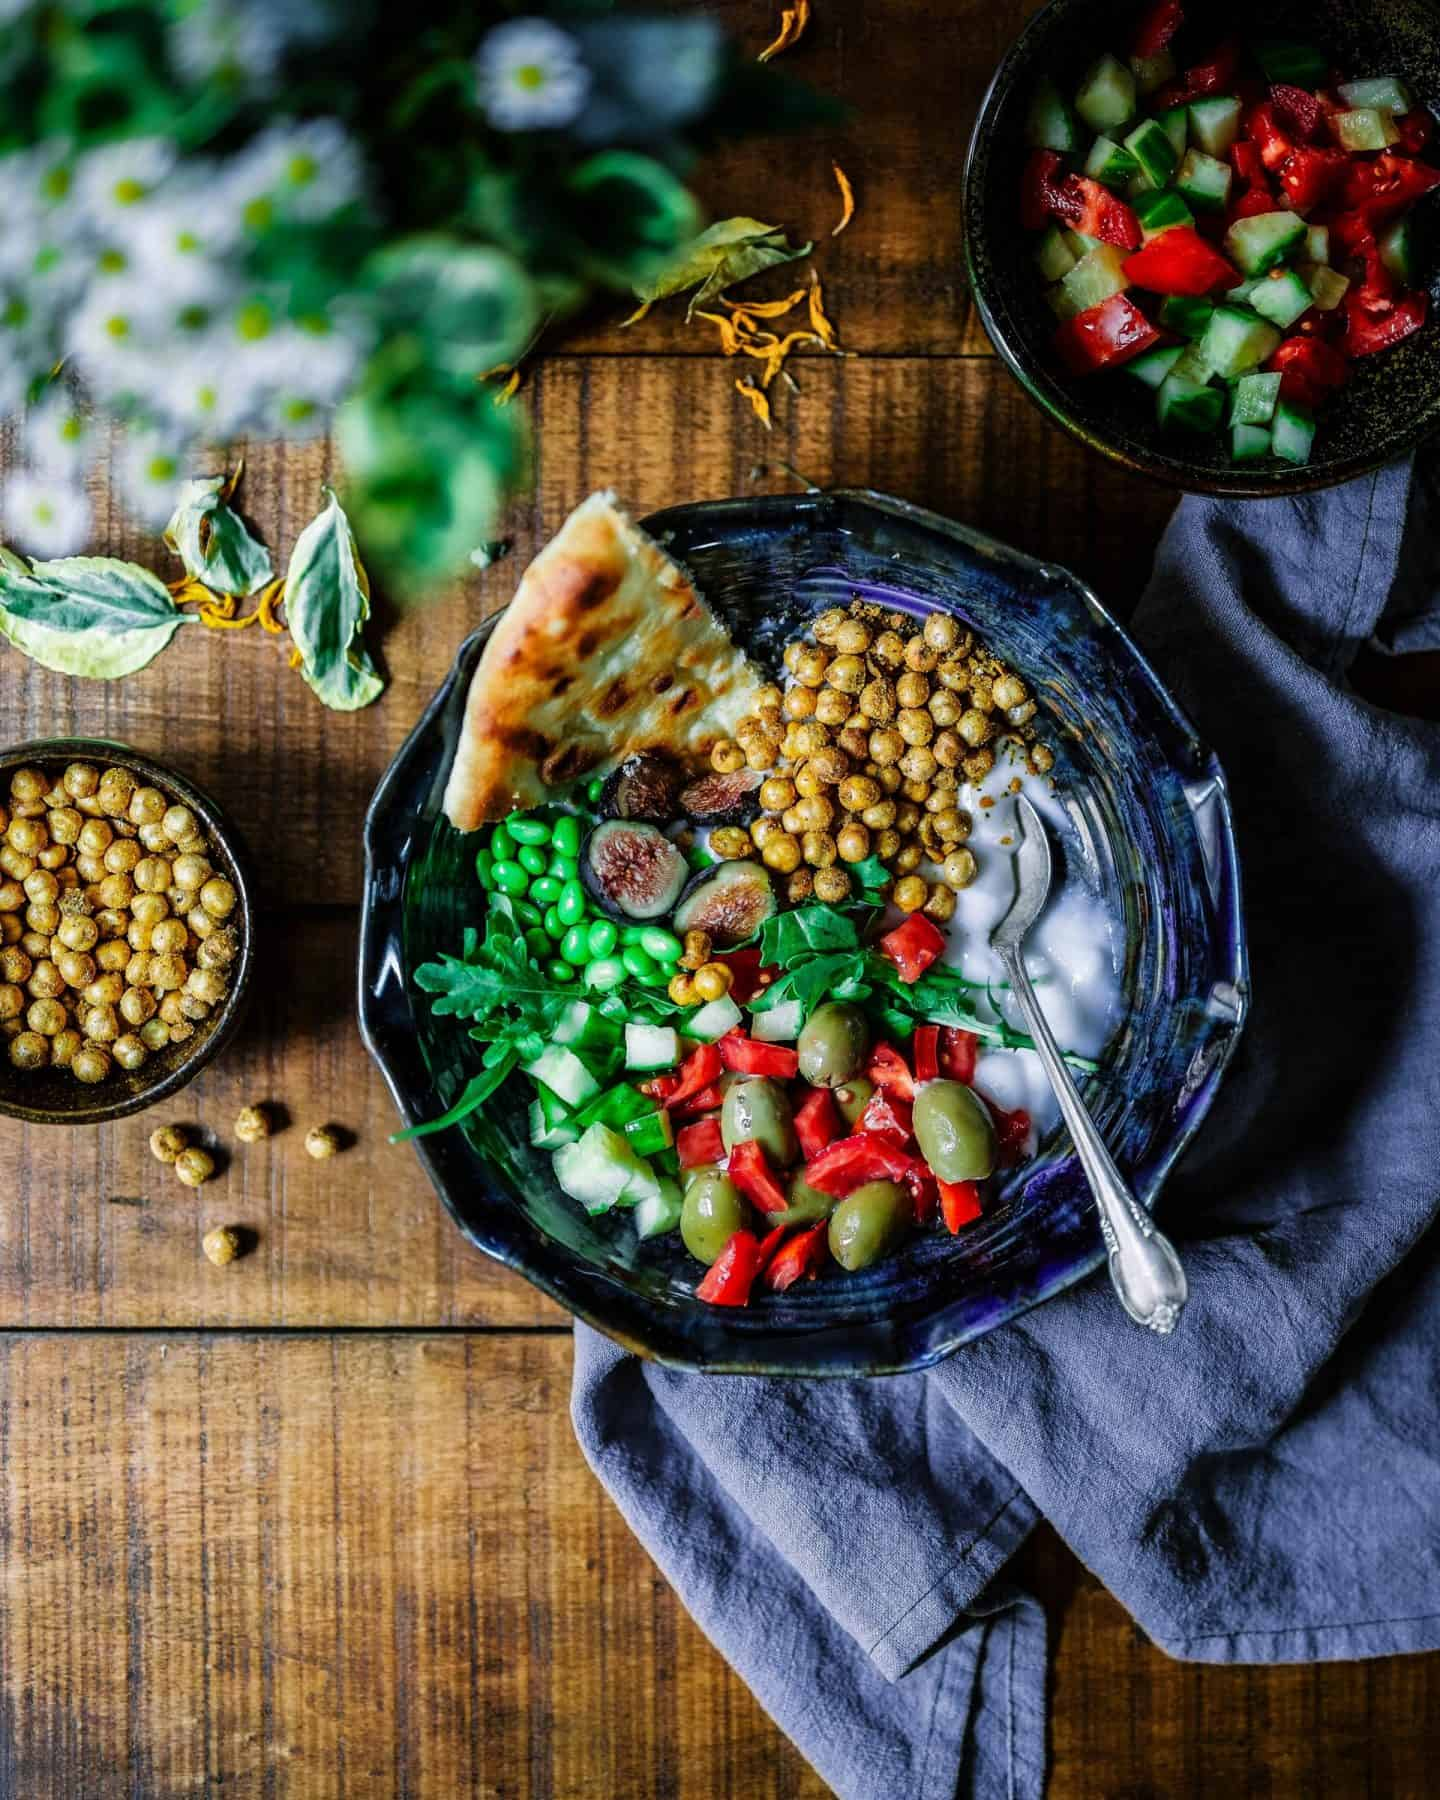 Tips for When Your Child Goes Vegan